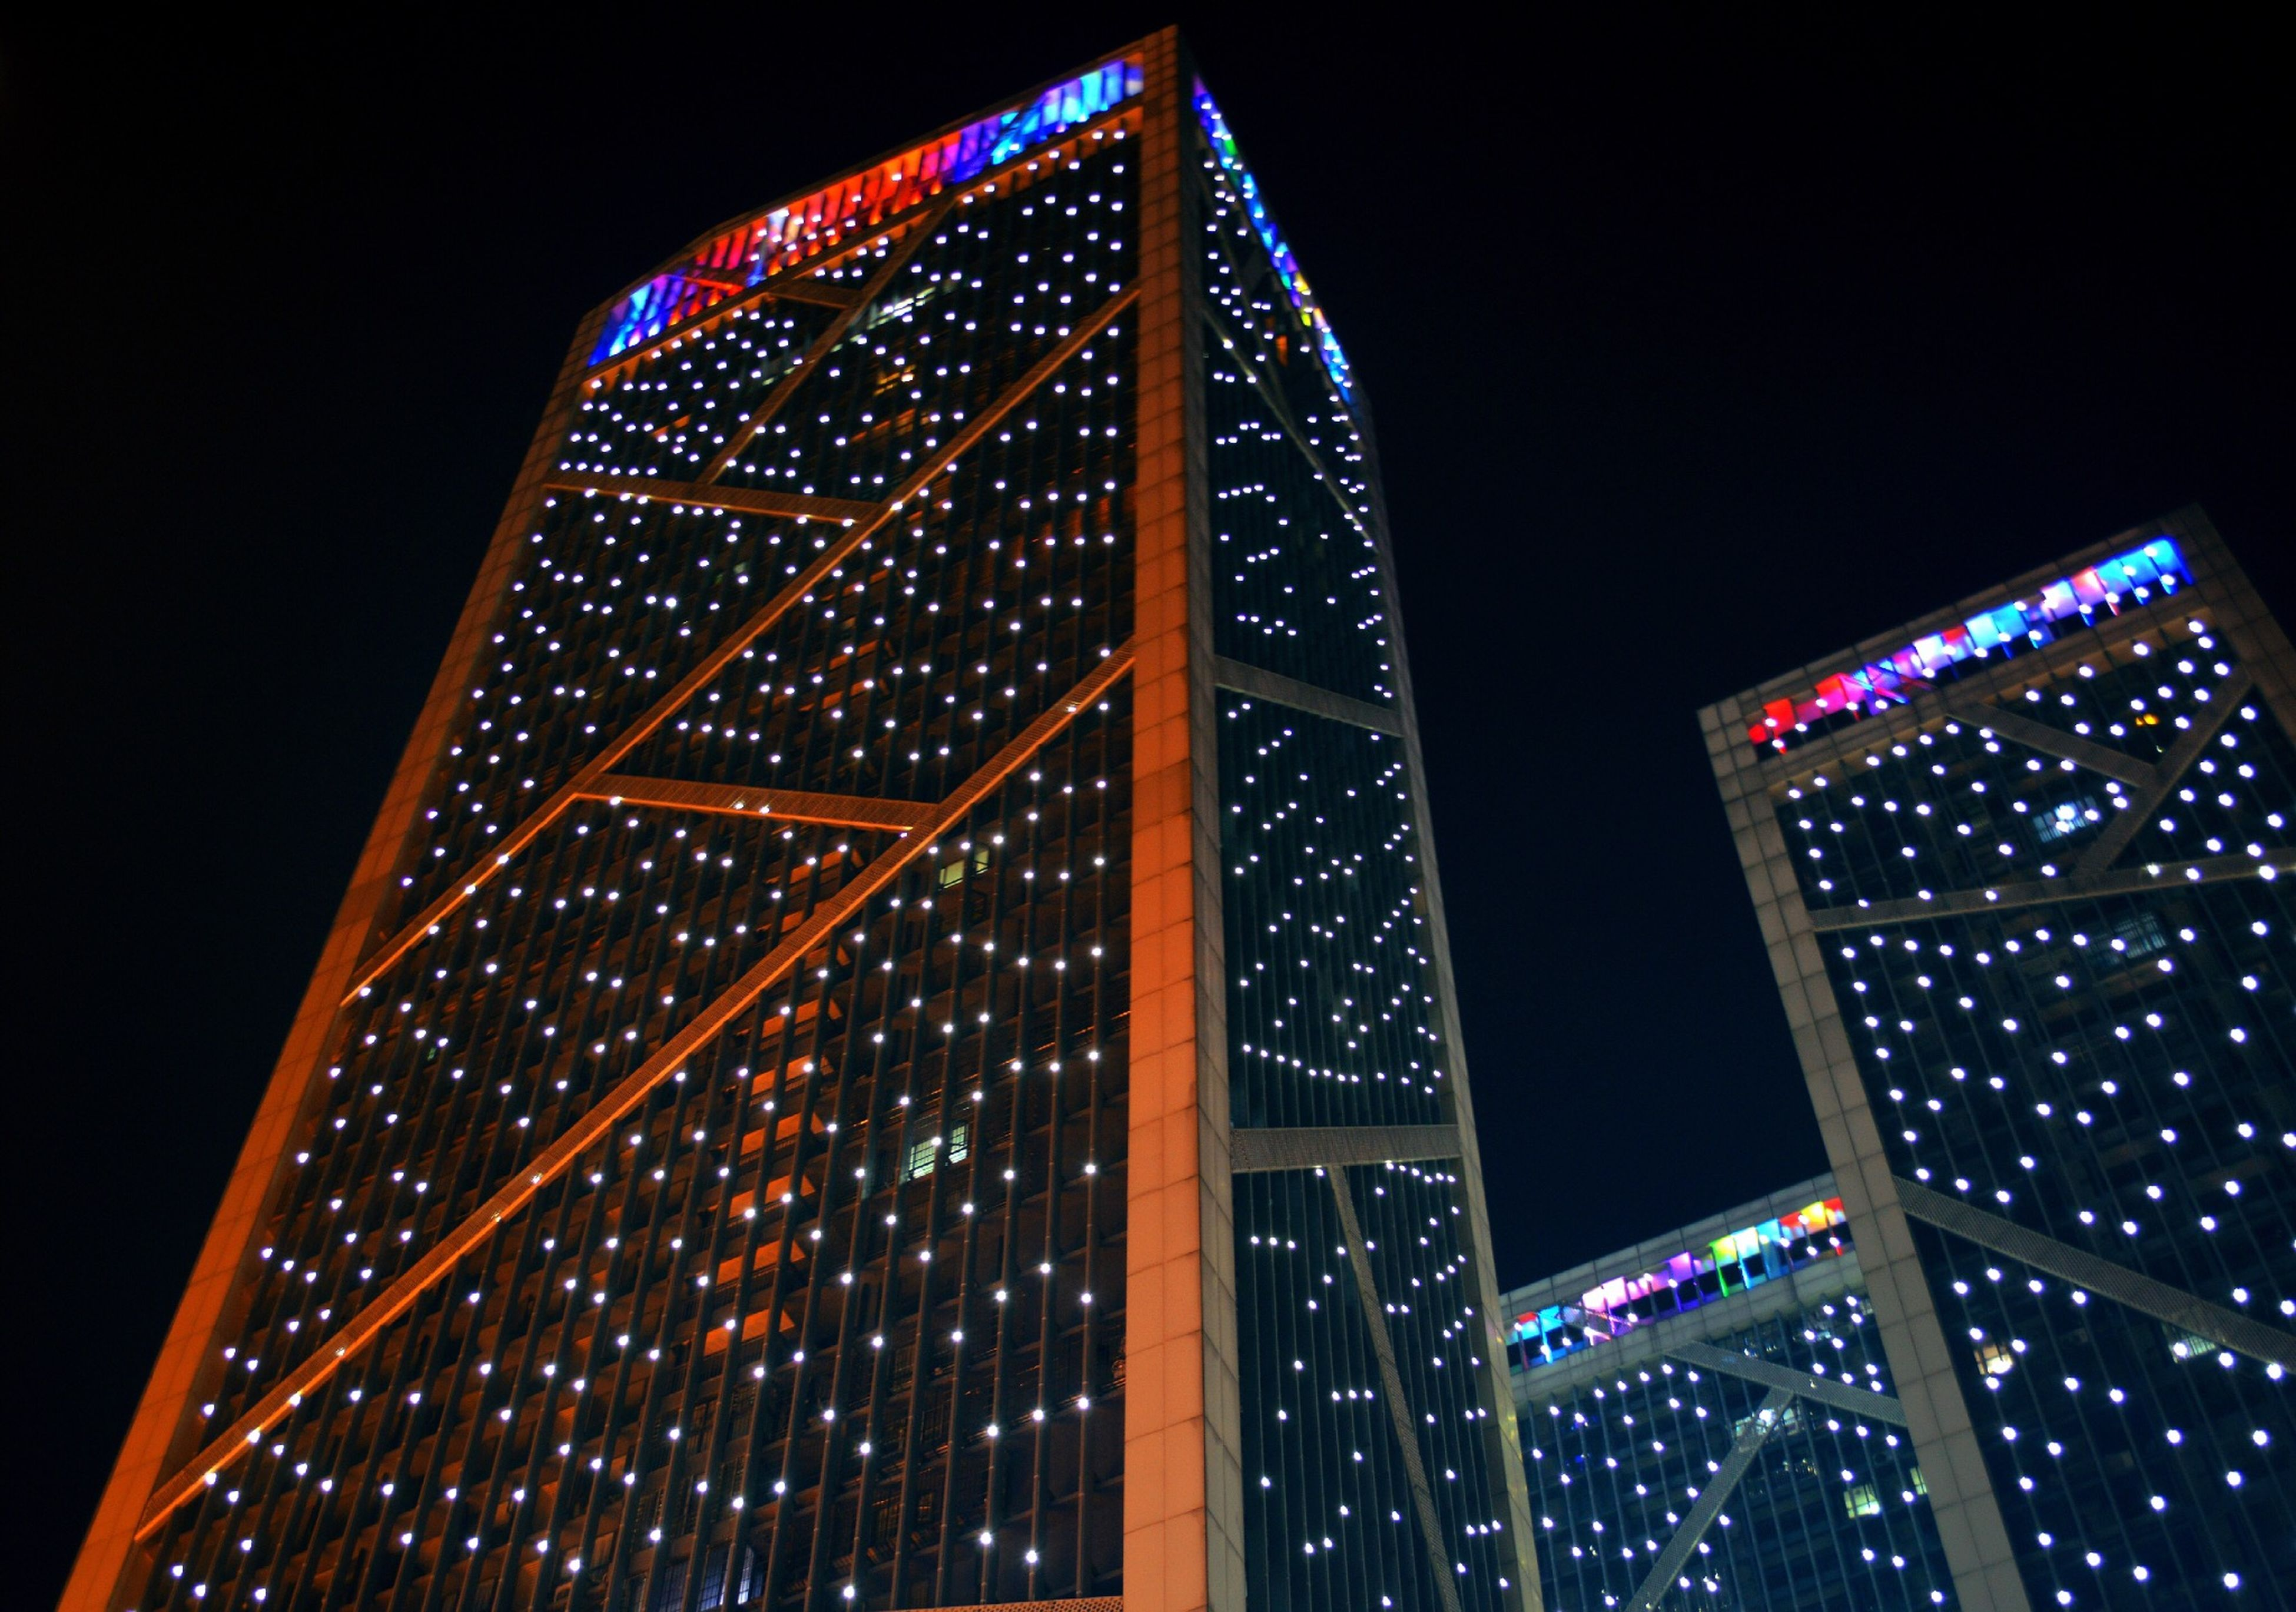 illuminated, low angle view, night, architecture, built structure, tower, building exterior, tall - high, modern, skyscraper, city, lighting equipment, clear sky, sky, no people, pattern, famous place, capital cities, outdoors, travel destinations